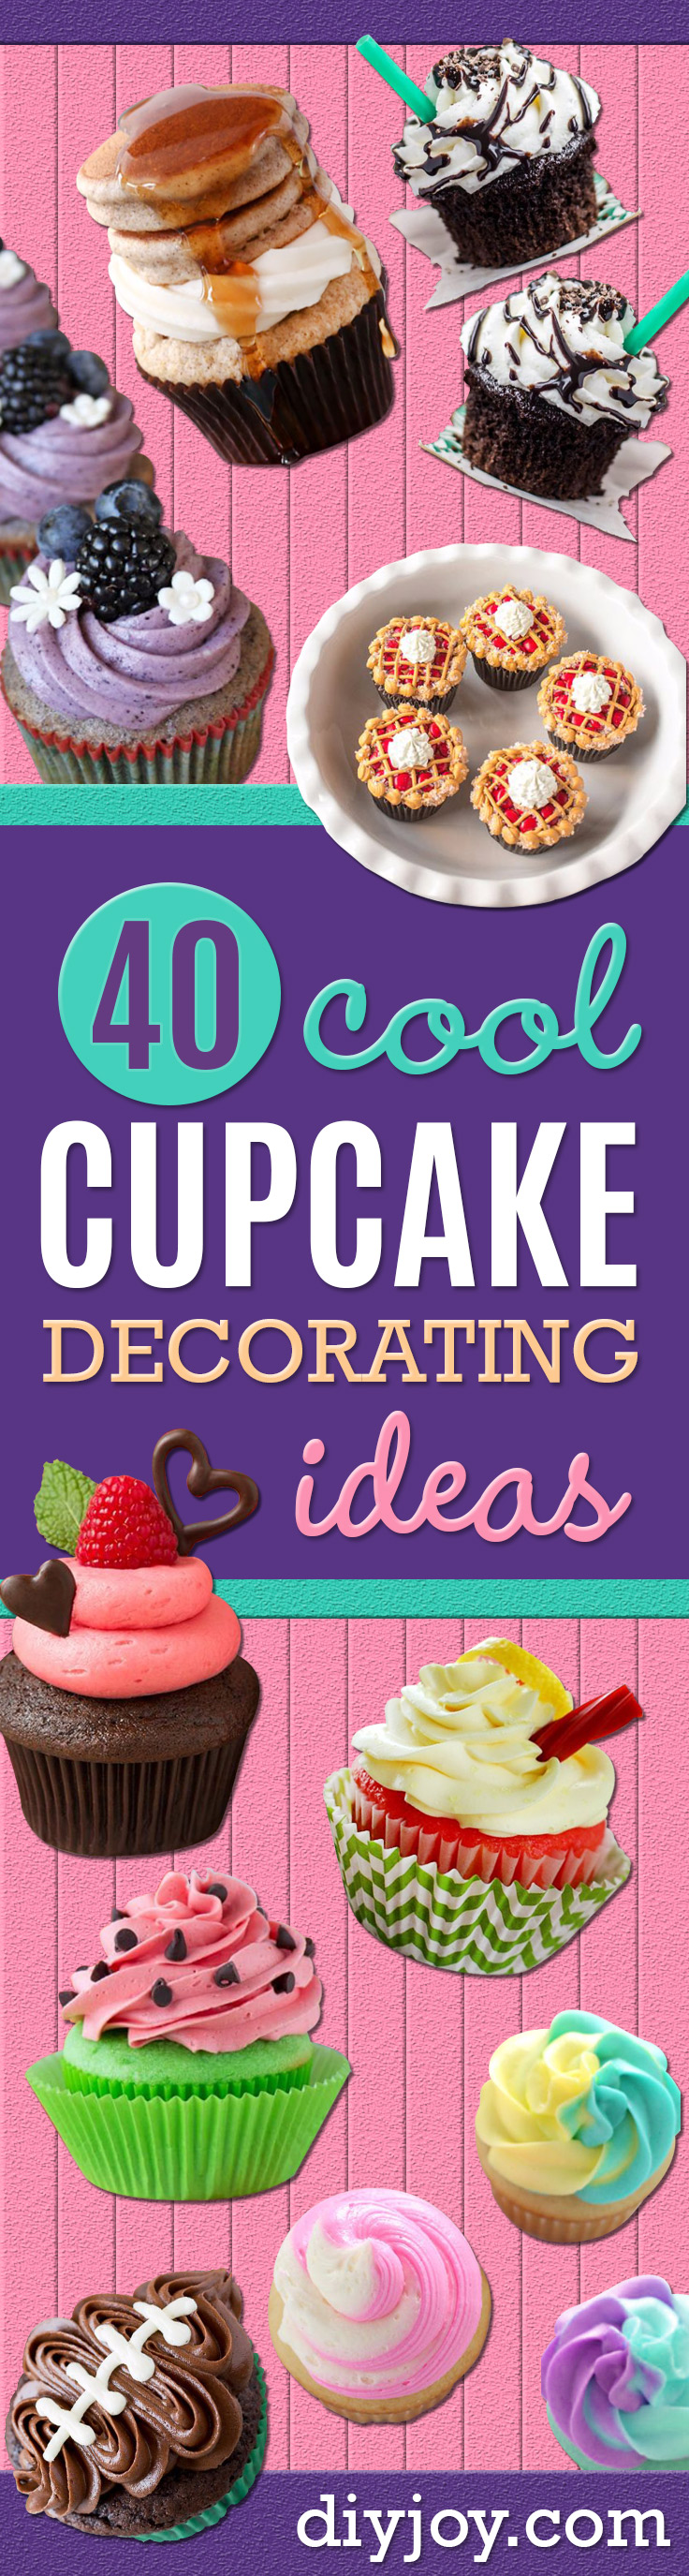 cupcake decorating ideas - easy Ways To Decorate Cute, Adorable Cupcakes - Quick Recipes and Simple Decorating Tips With Icing, Candy, Chocolate, Buttercream Frosting and Fruit - kids birthday party ideas cake